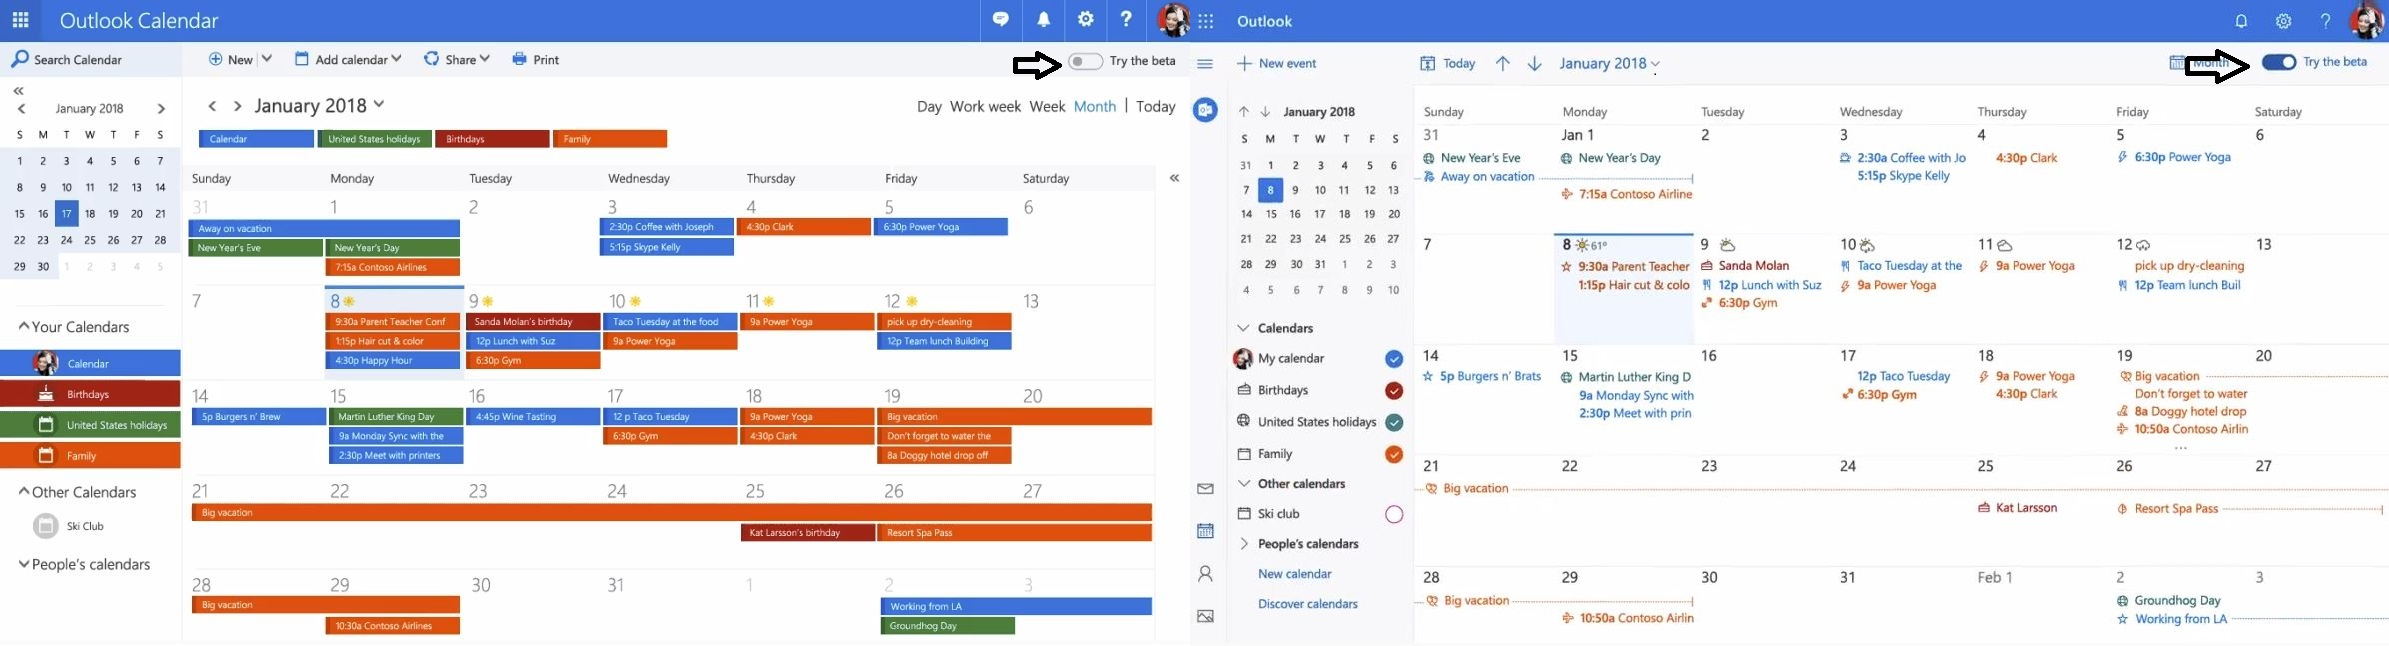 Calendário do Outlook: Microsoft anuncia nova experiencia visual no Outlook.com